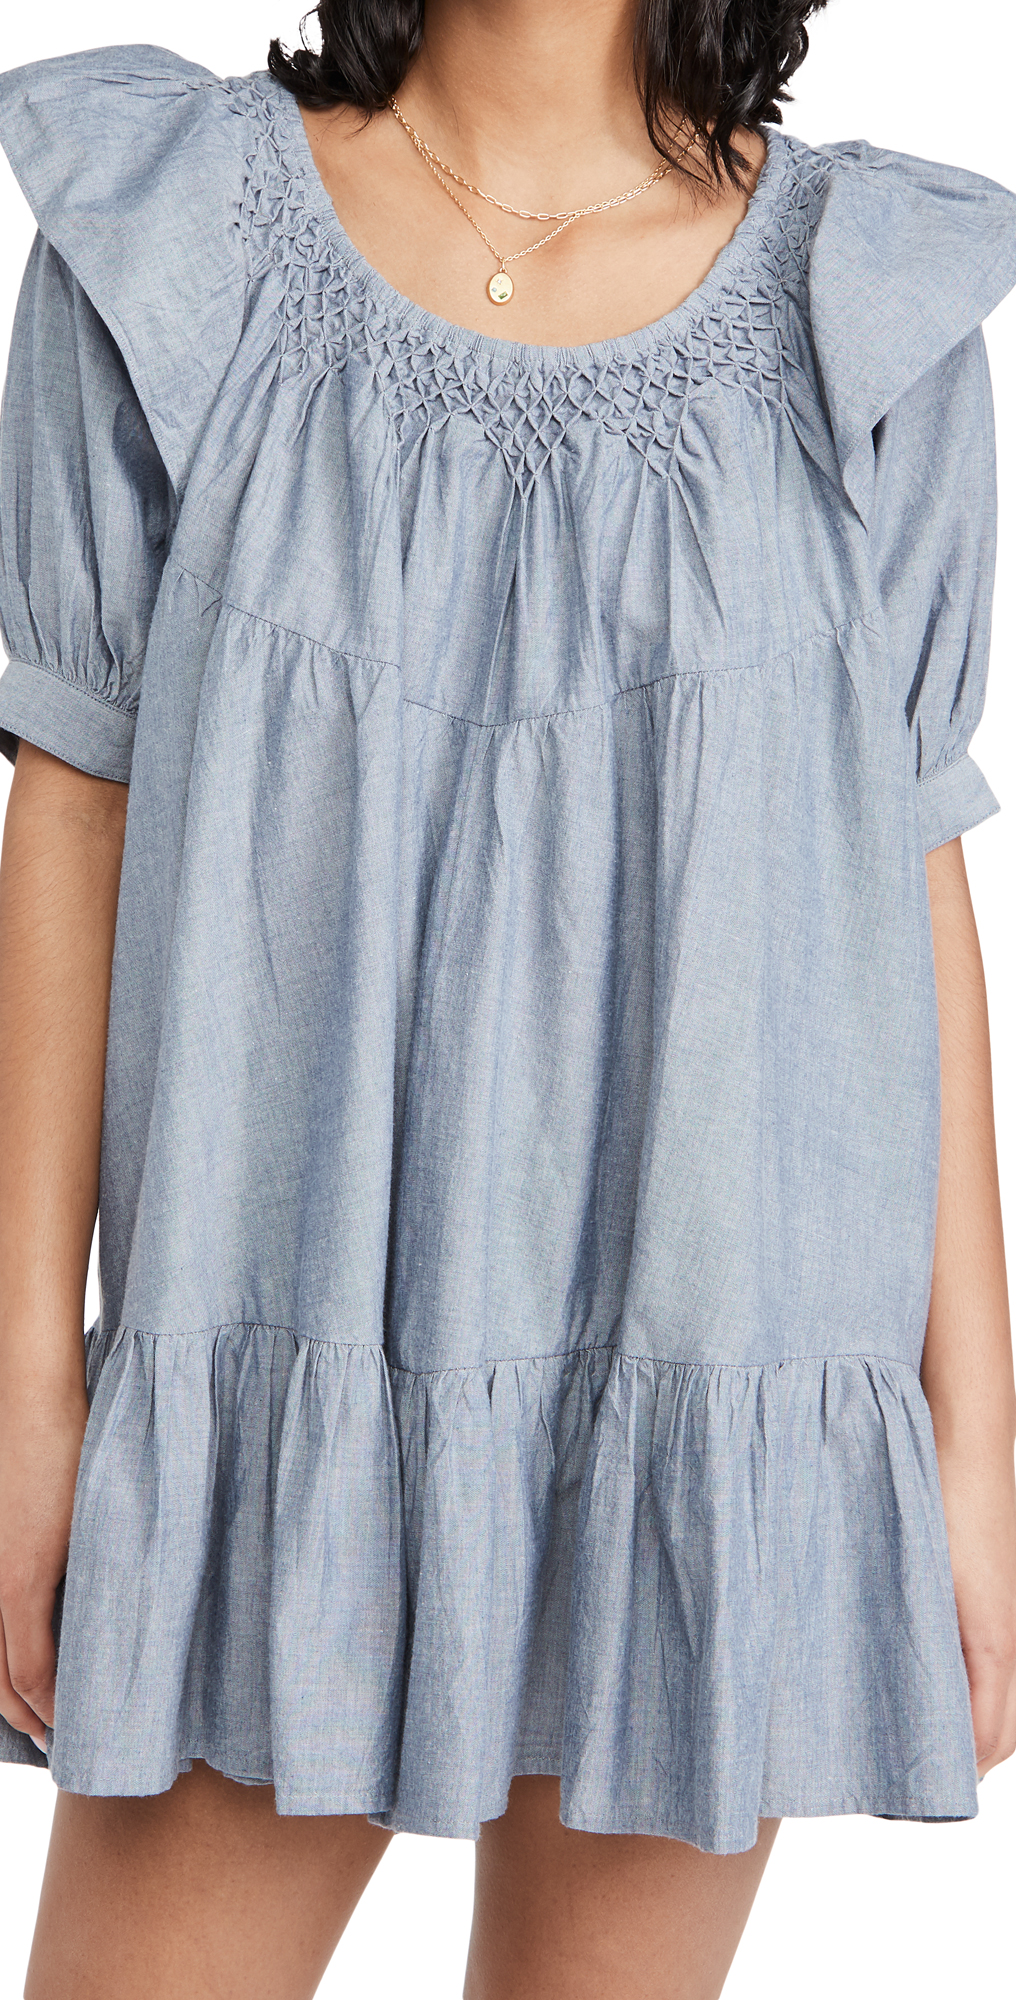 Free People Amelie Mini Dress Denim